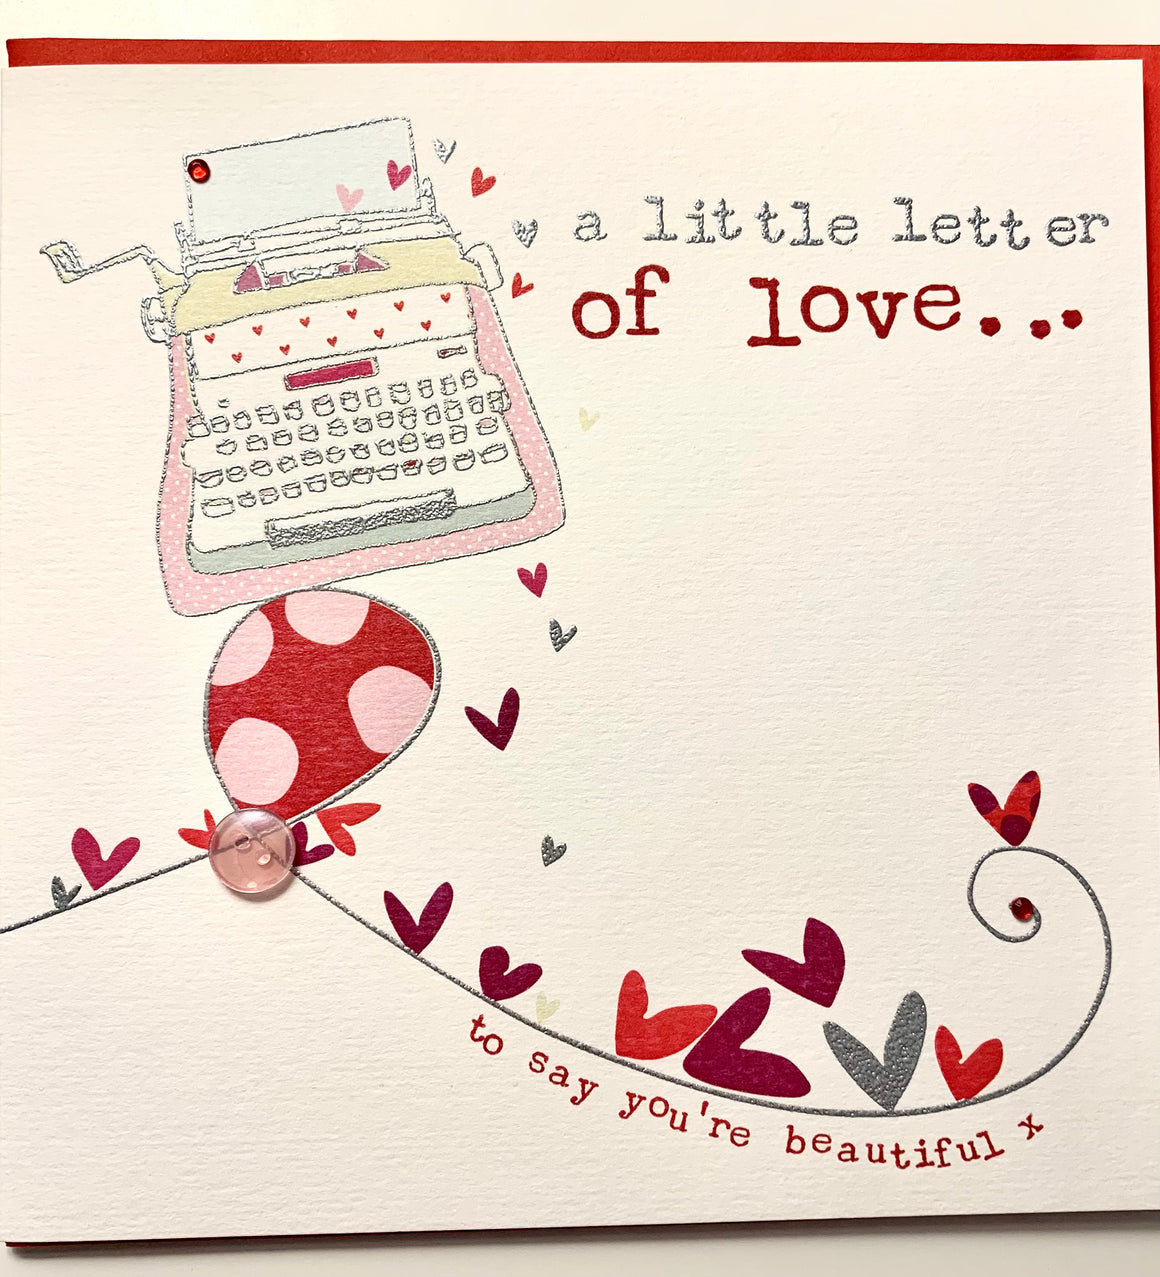 a little letter of love to say you're beautiful - picture of a typewritr and hearts